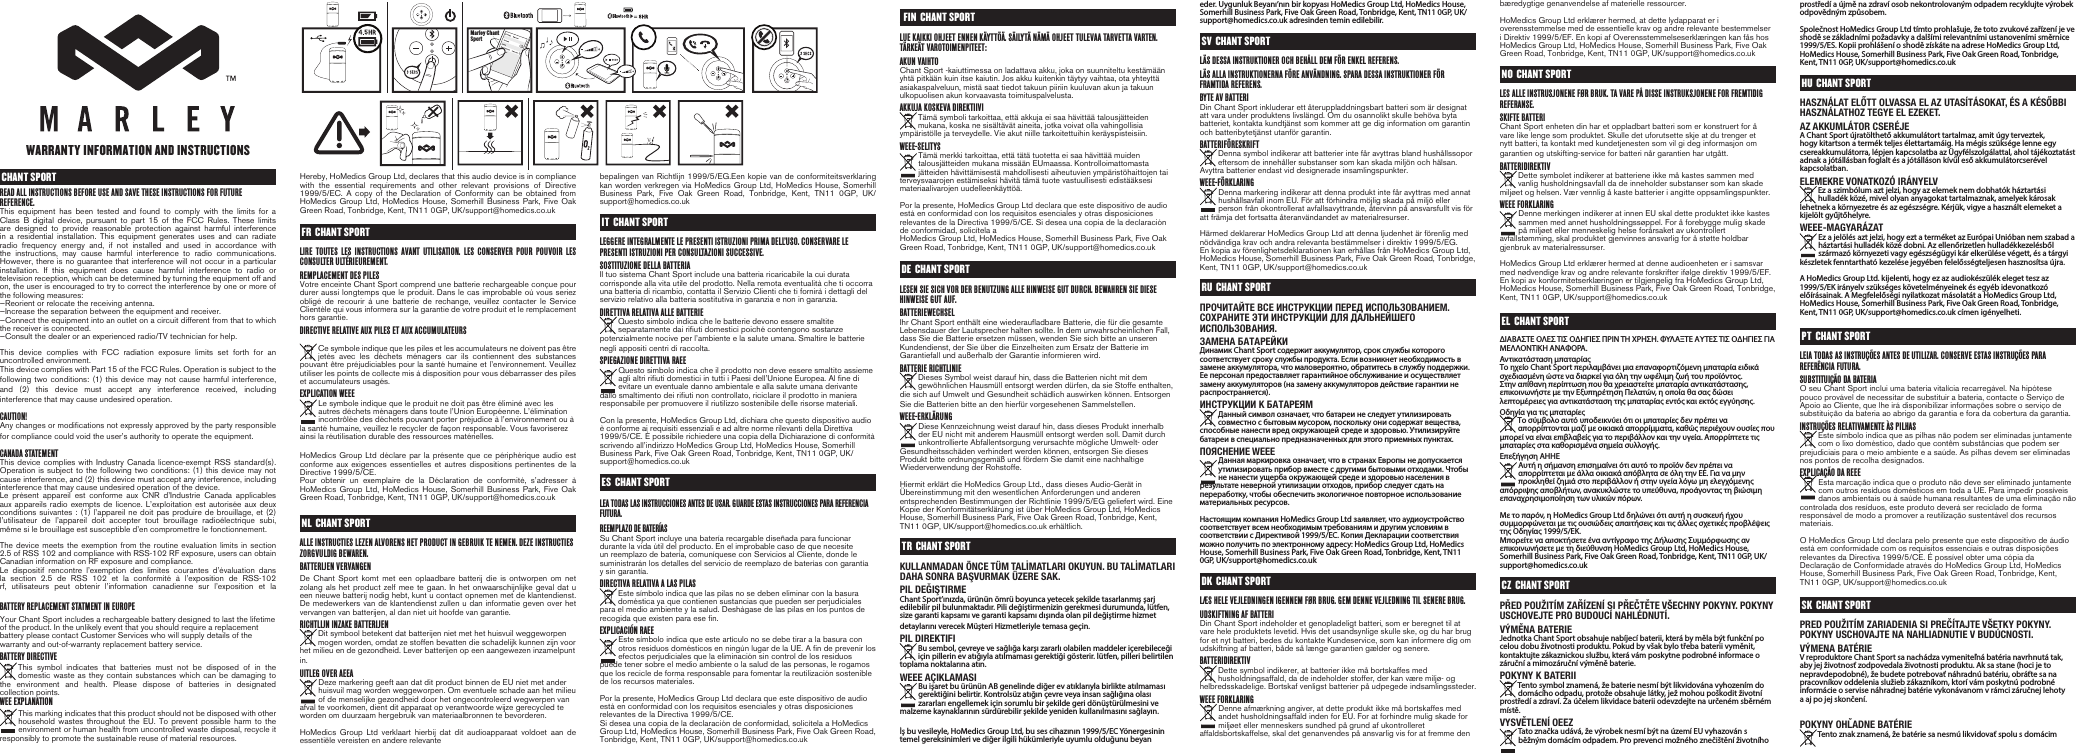 marley chant sport instructions